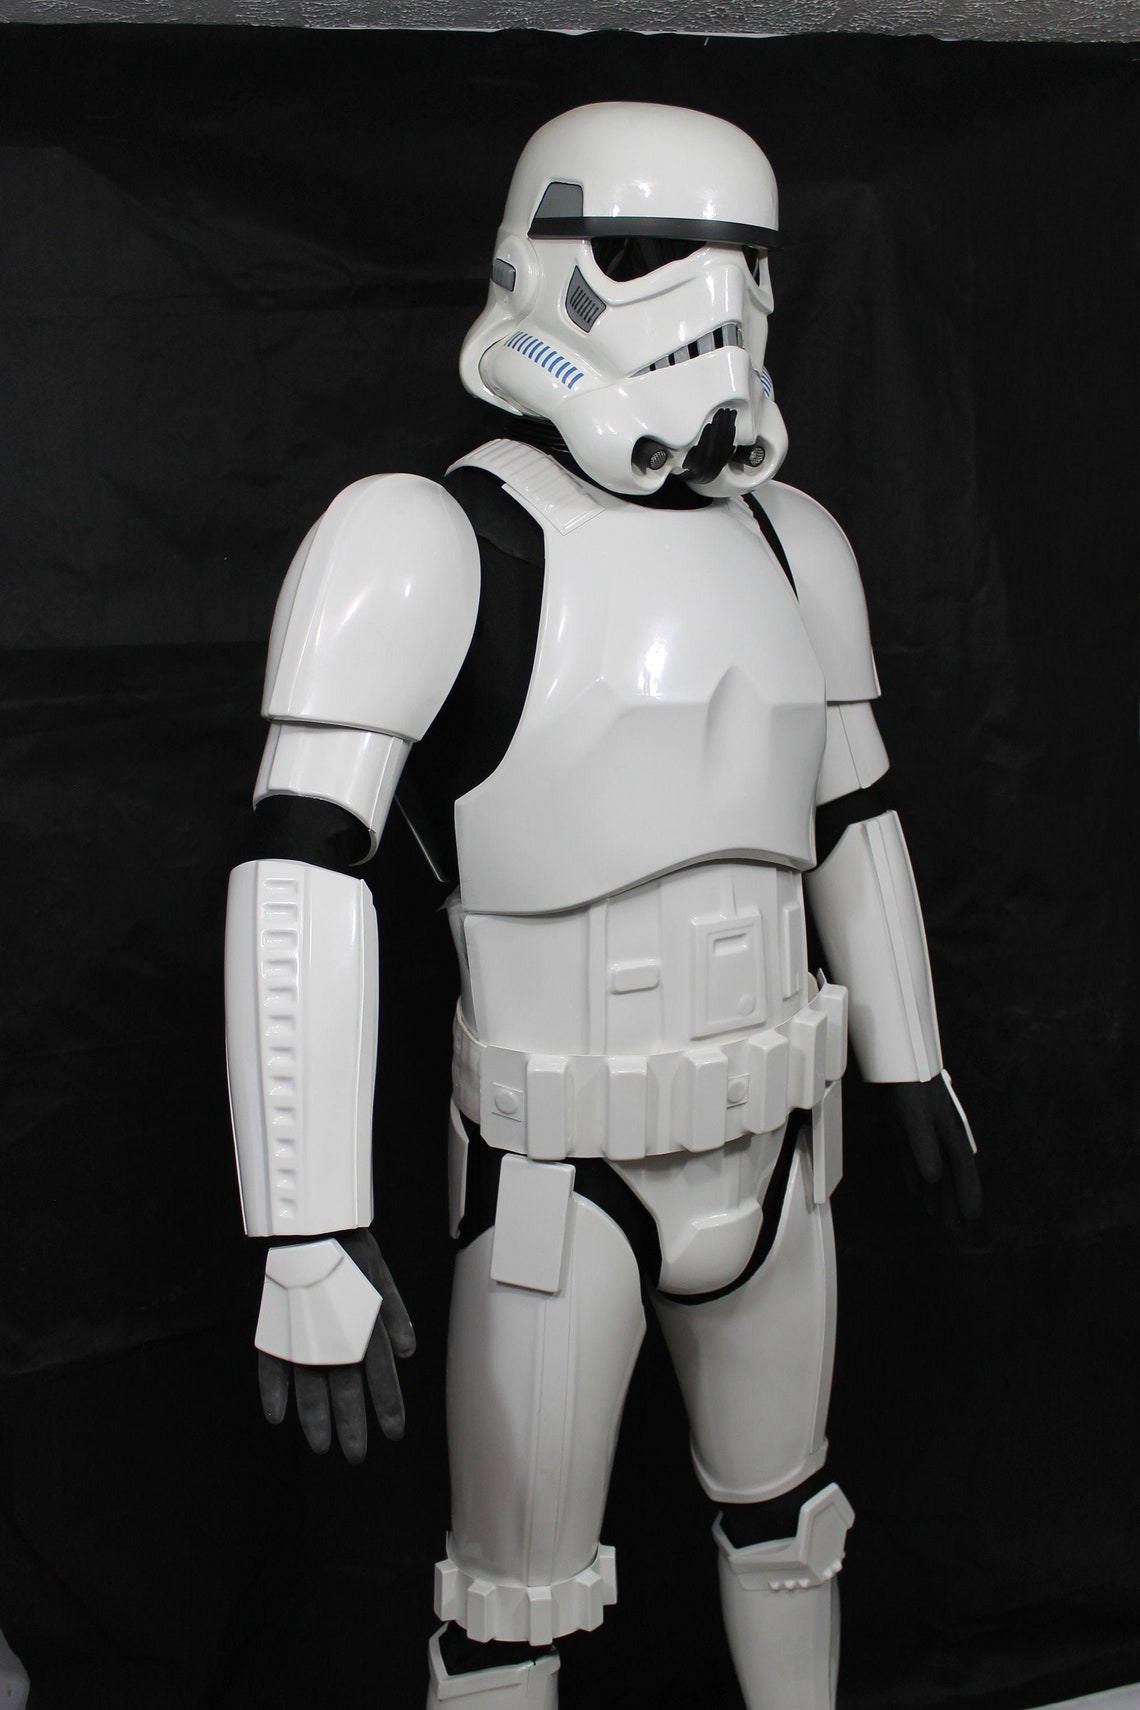 Star Wars Stormtrooper Armor kit Idealized Version Glossy ABS image 1